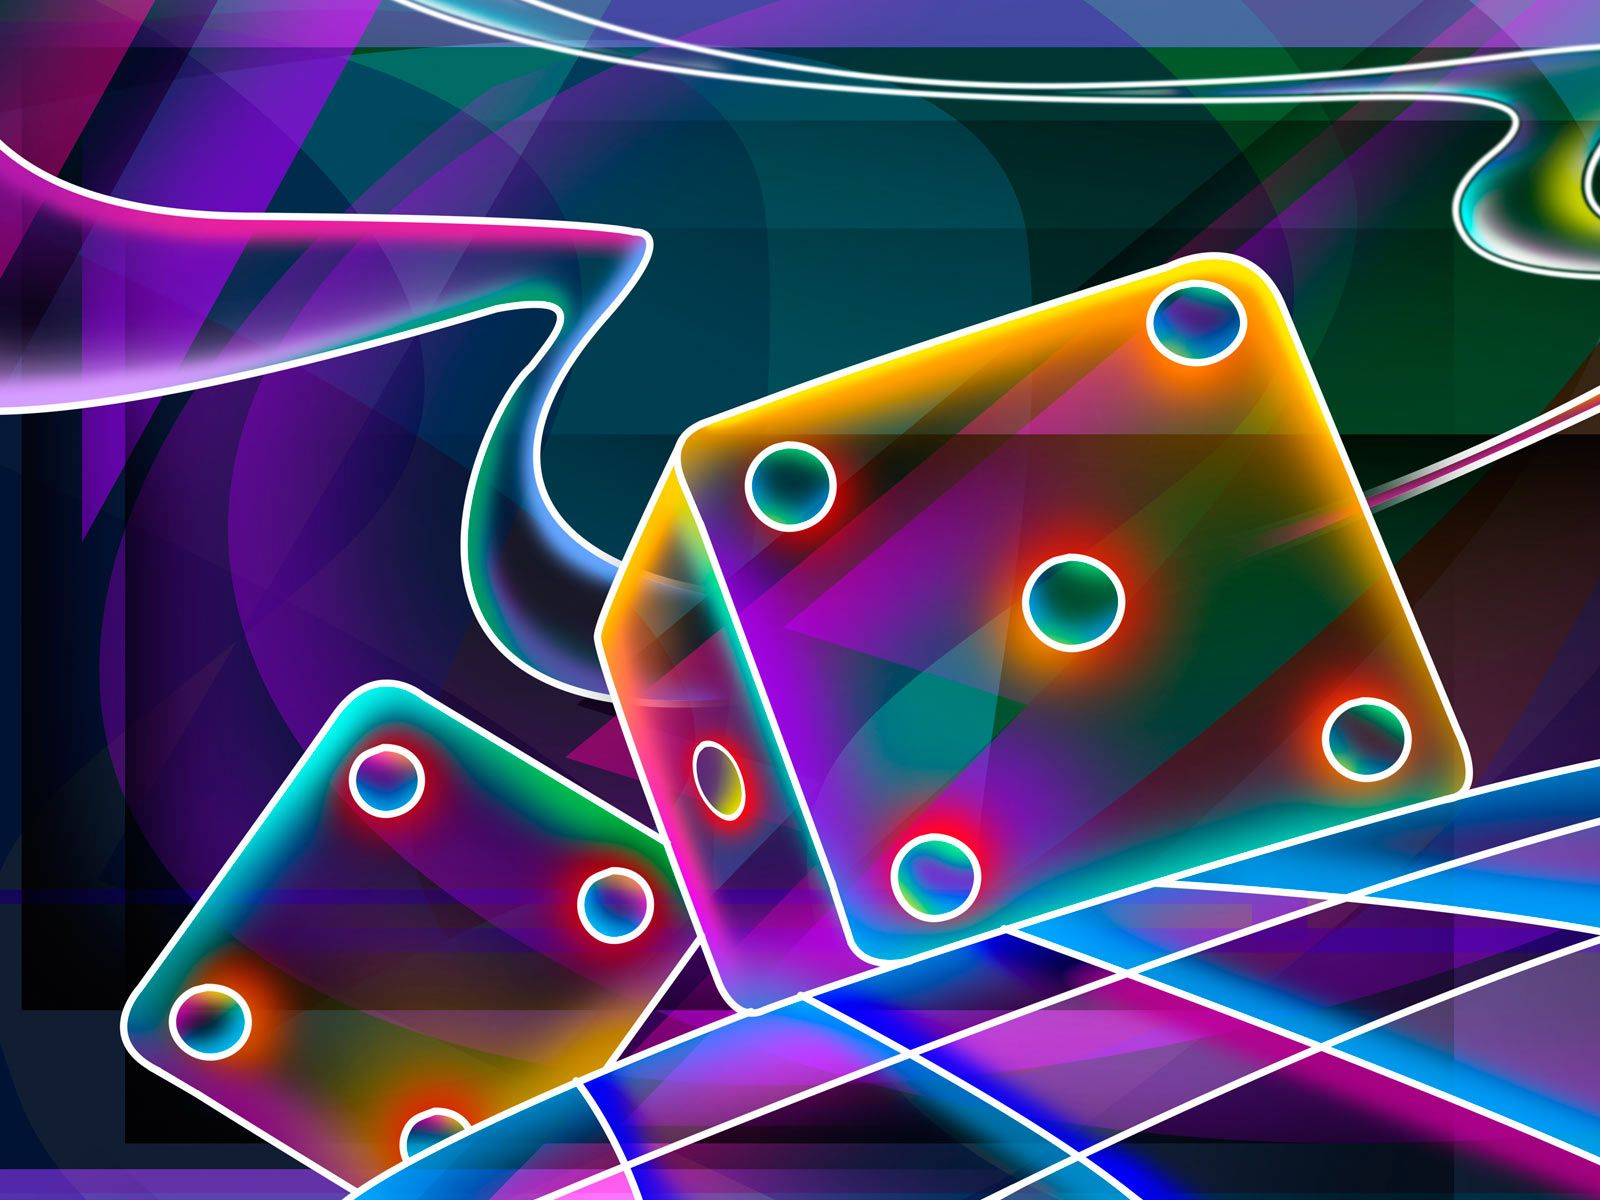 3d Hd 3d Abstract 3d Wallpapers Hd 3d Abstract 3d Wallpapers Hd